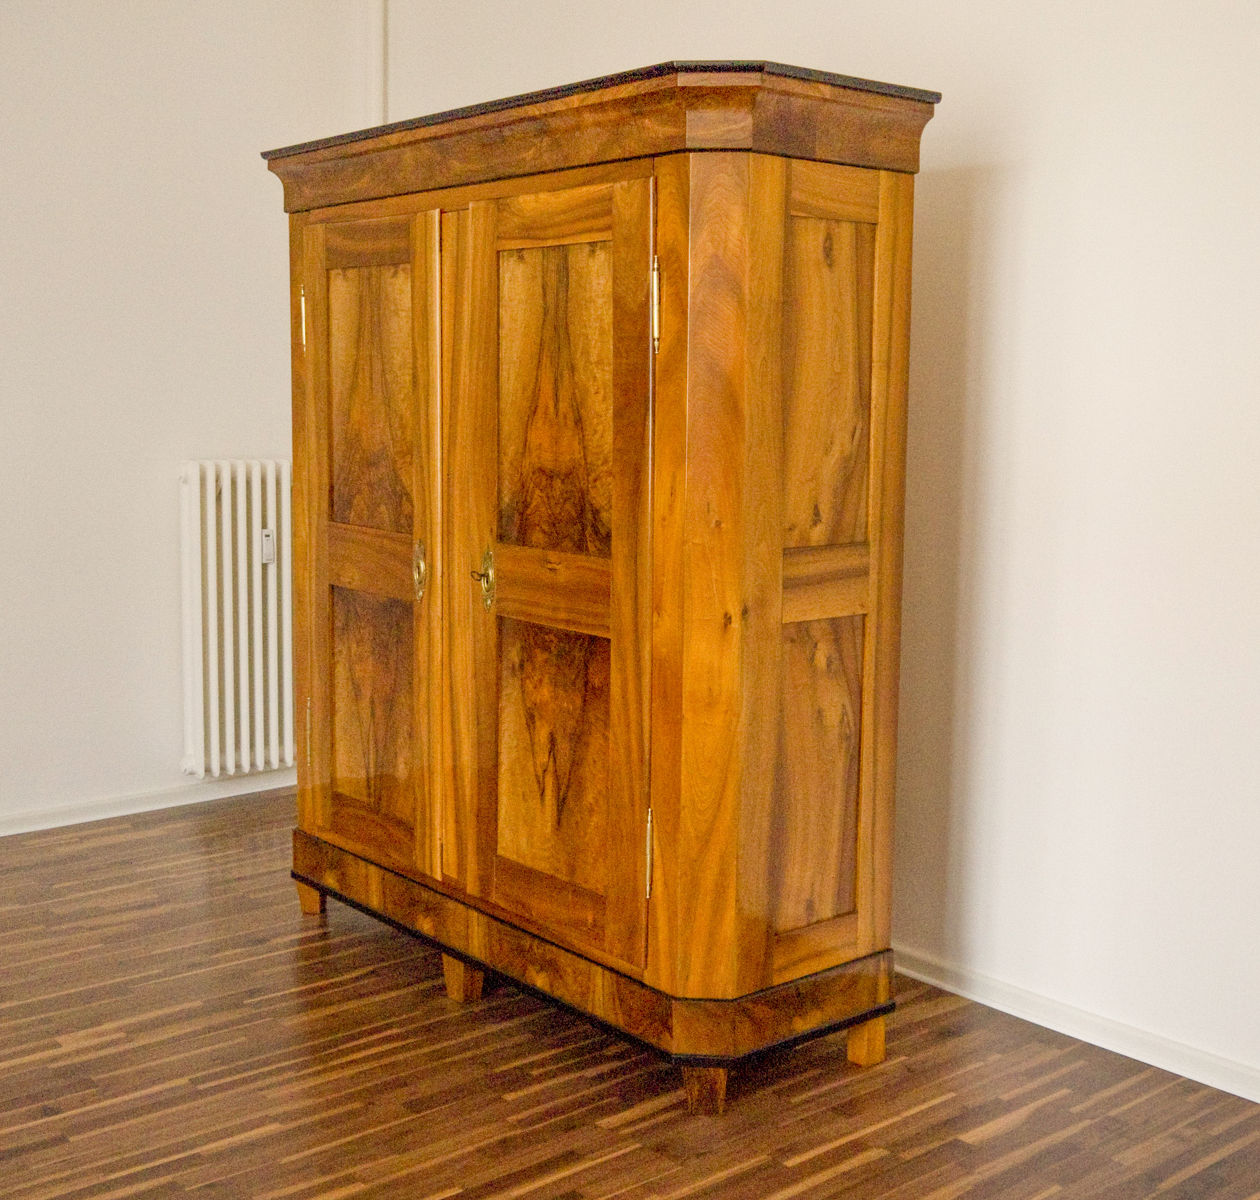 m belrestauration berlin m bel restaurieren m belrestaurator schneider. Black Bedroom Furniture Sets. Home Design Ideas